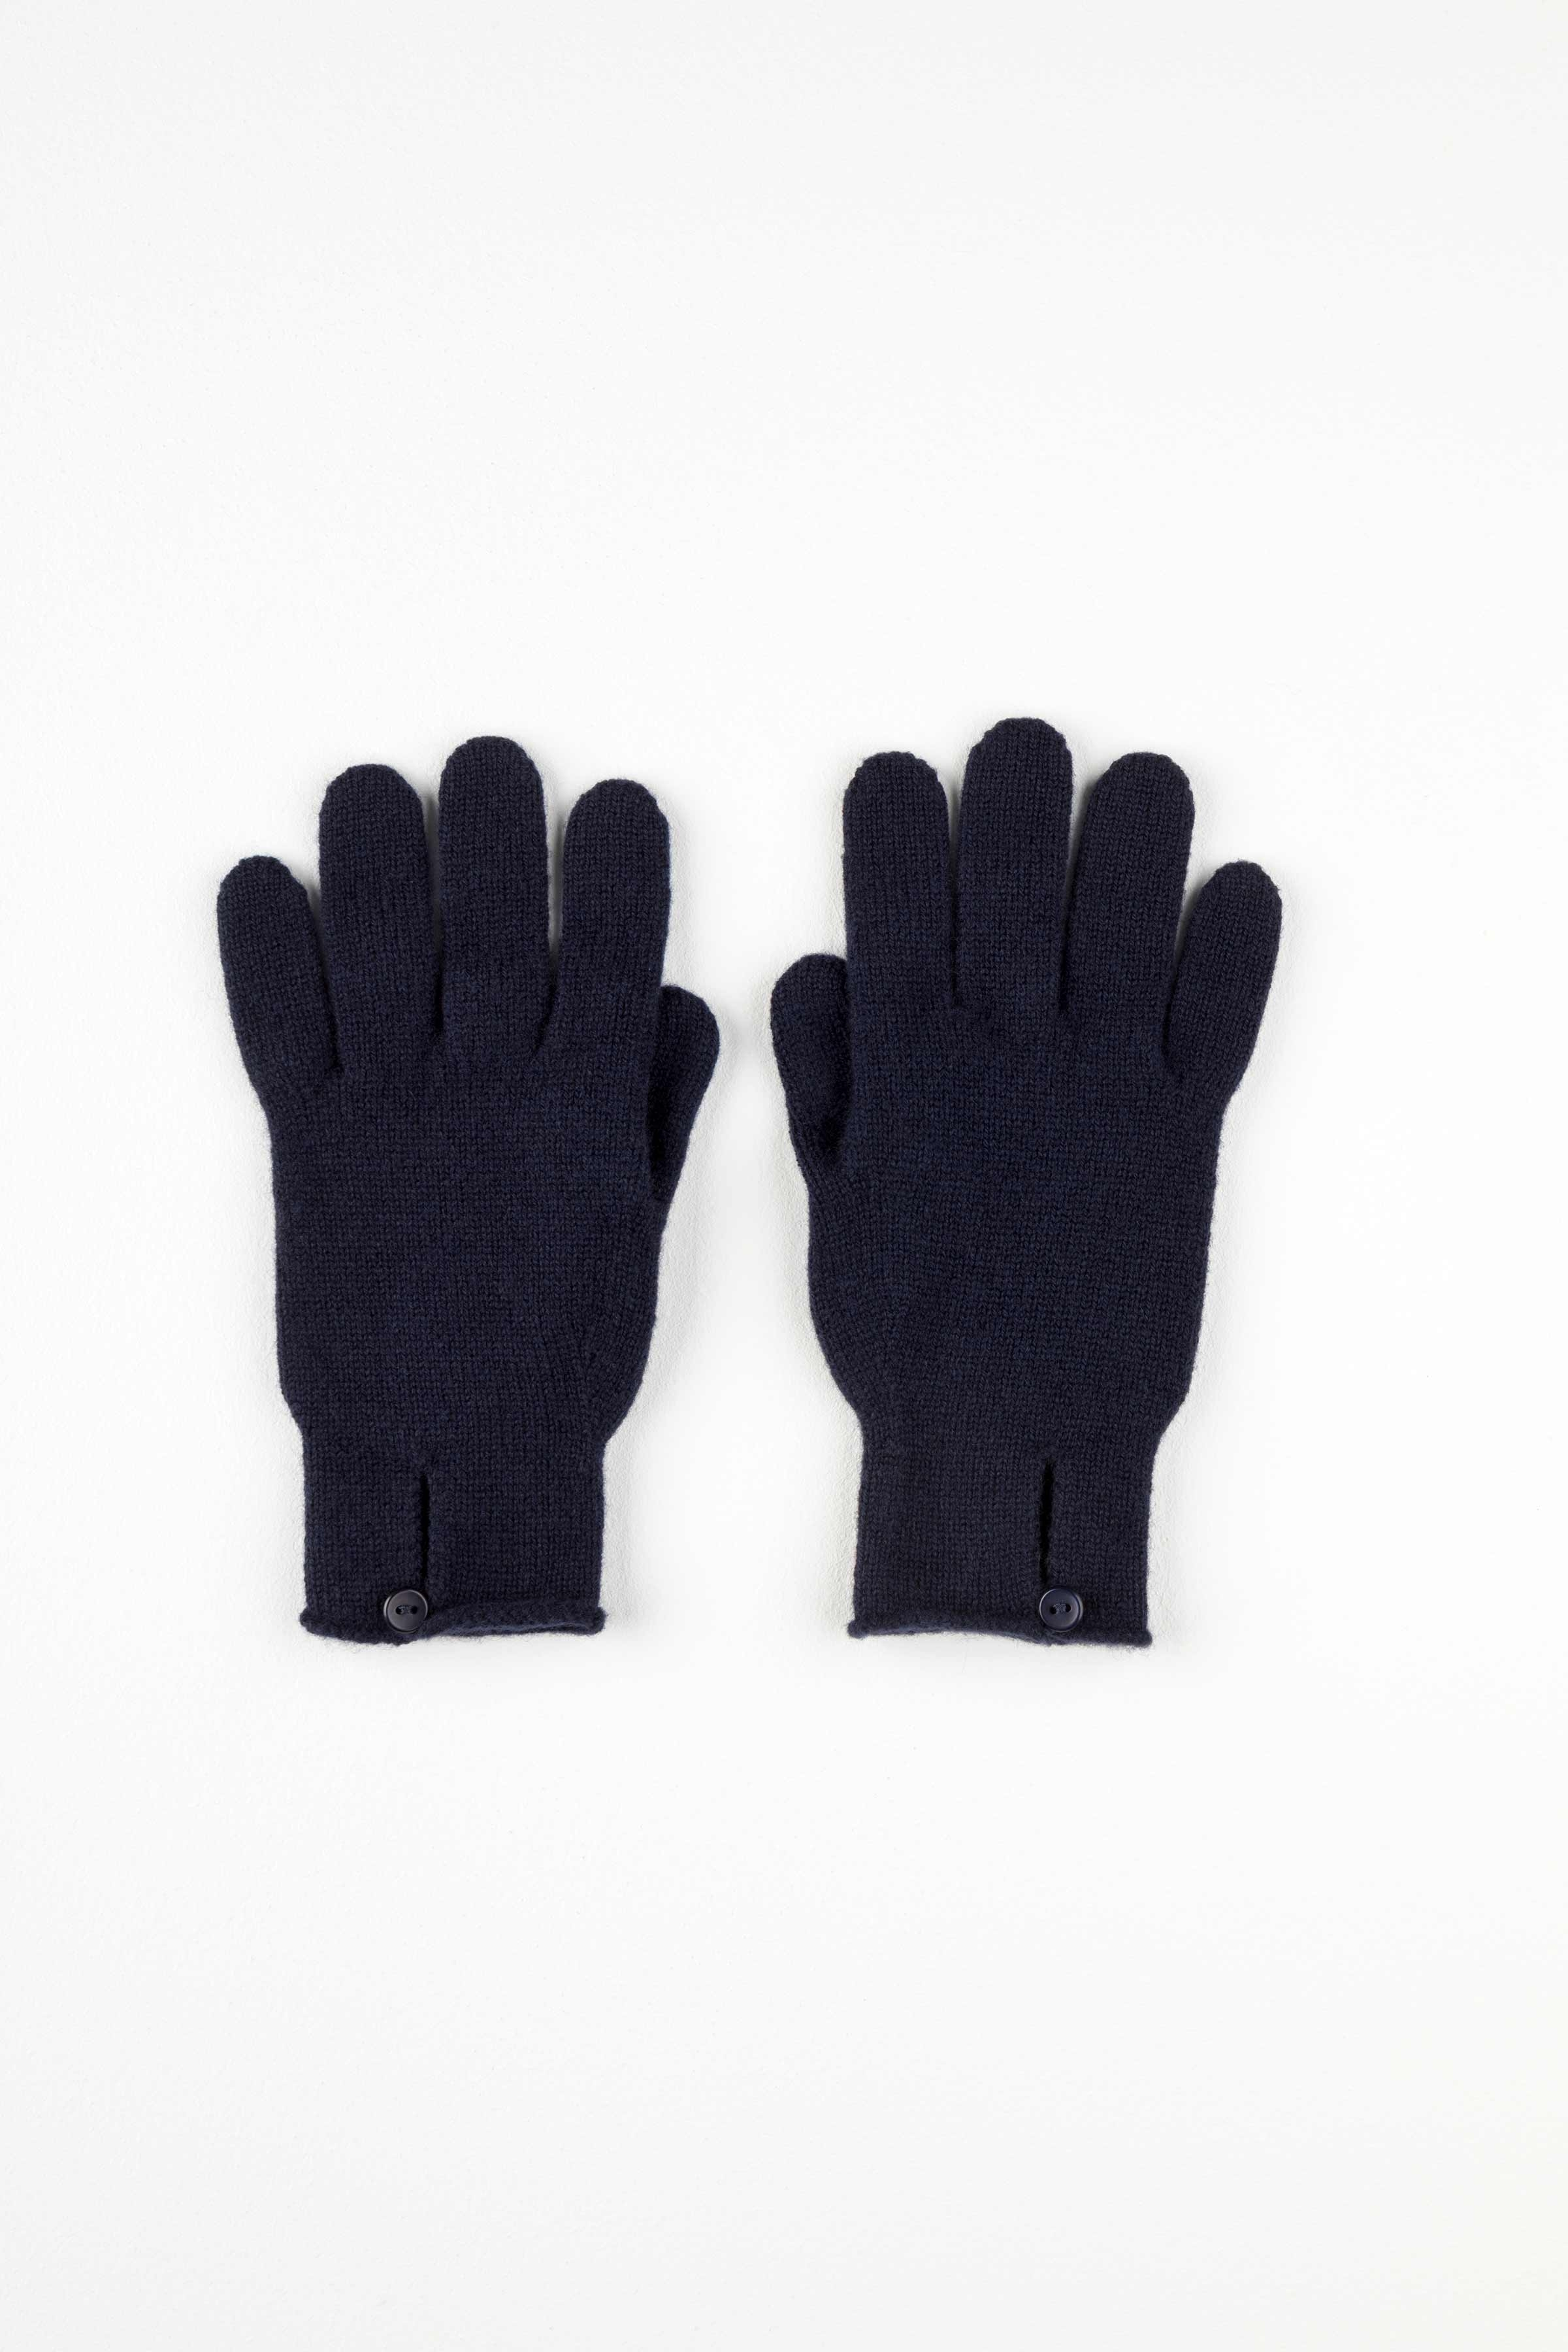 JOHNSTONS OF ELGIN NAVY BUTTON LOOP WOMENS CASHMERE GLOVES